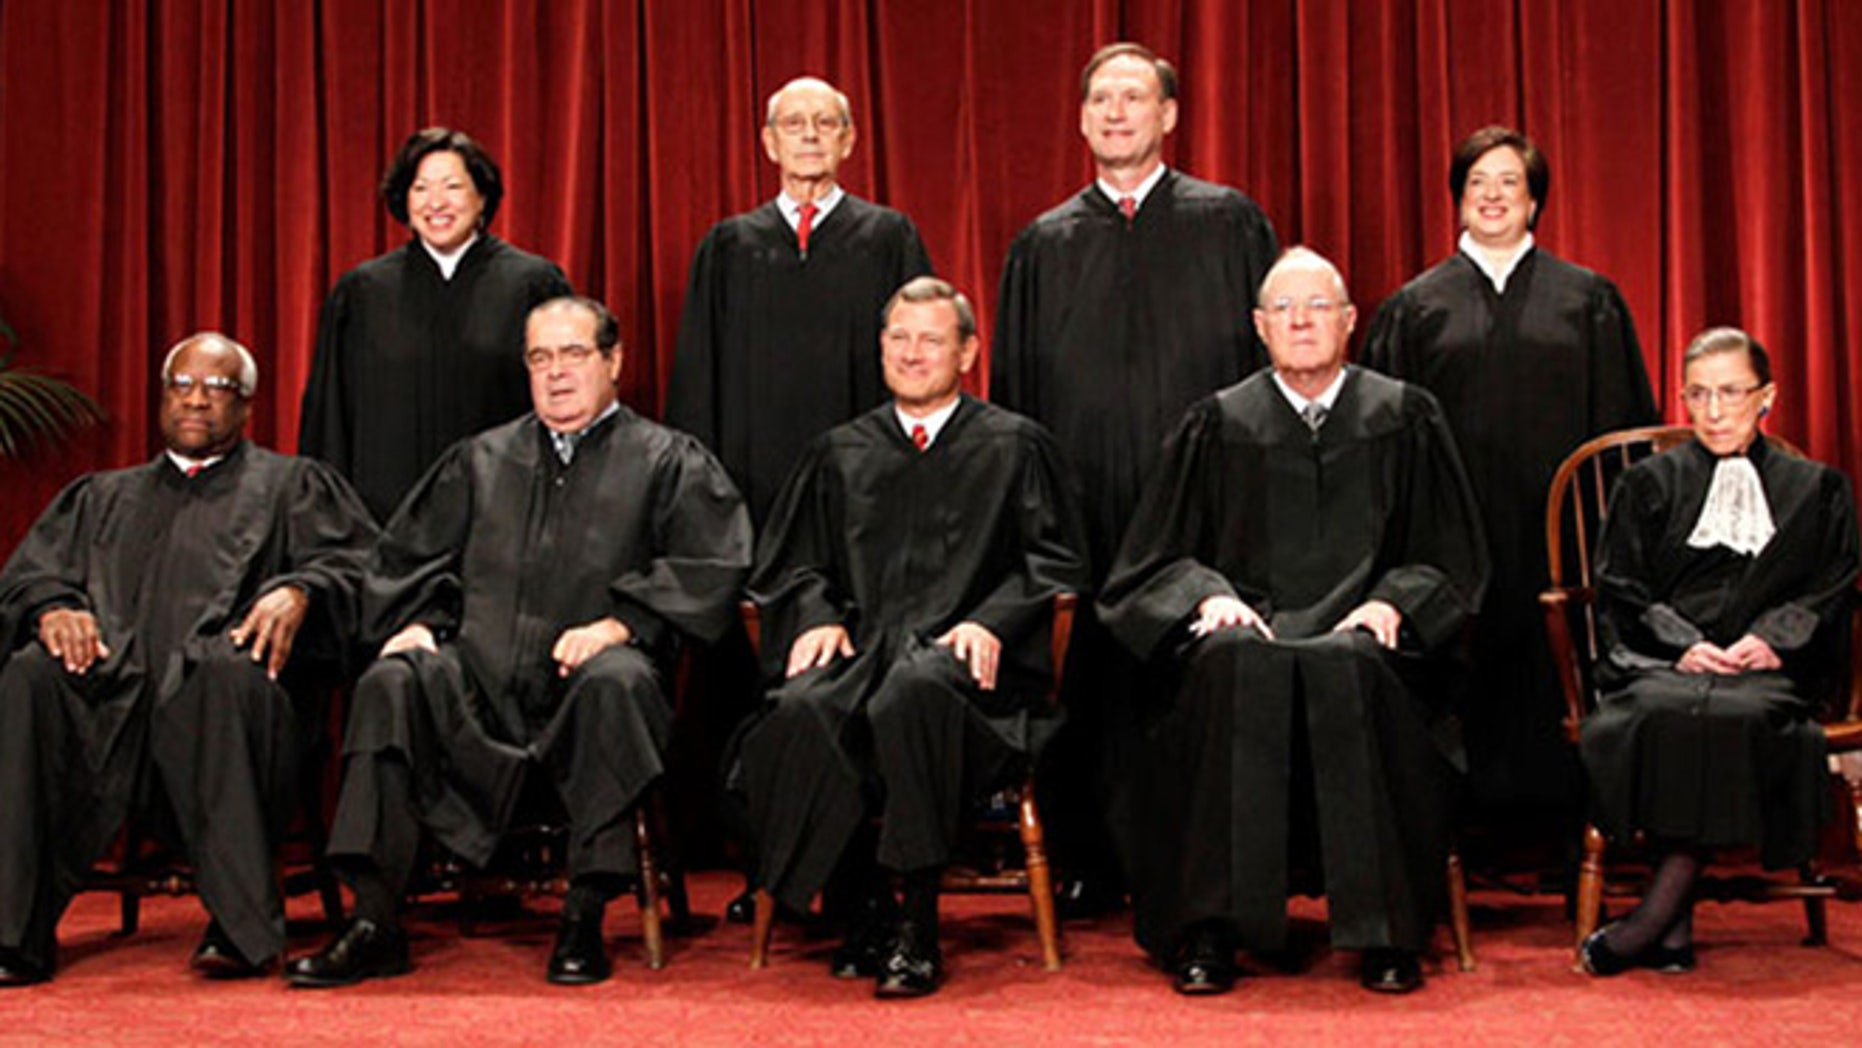 The U.S. Supreme Court justices are pictured.